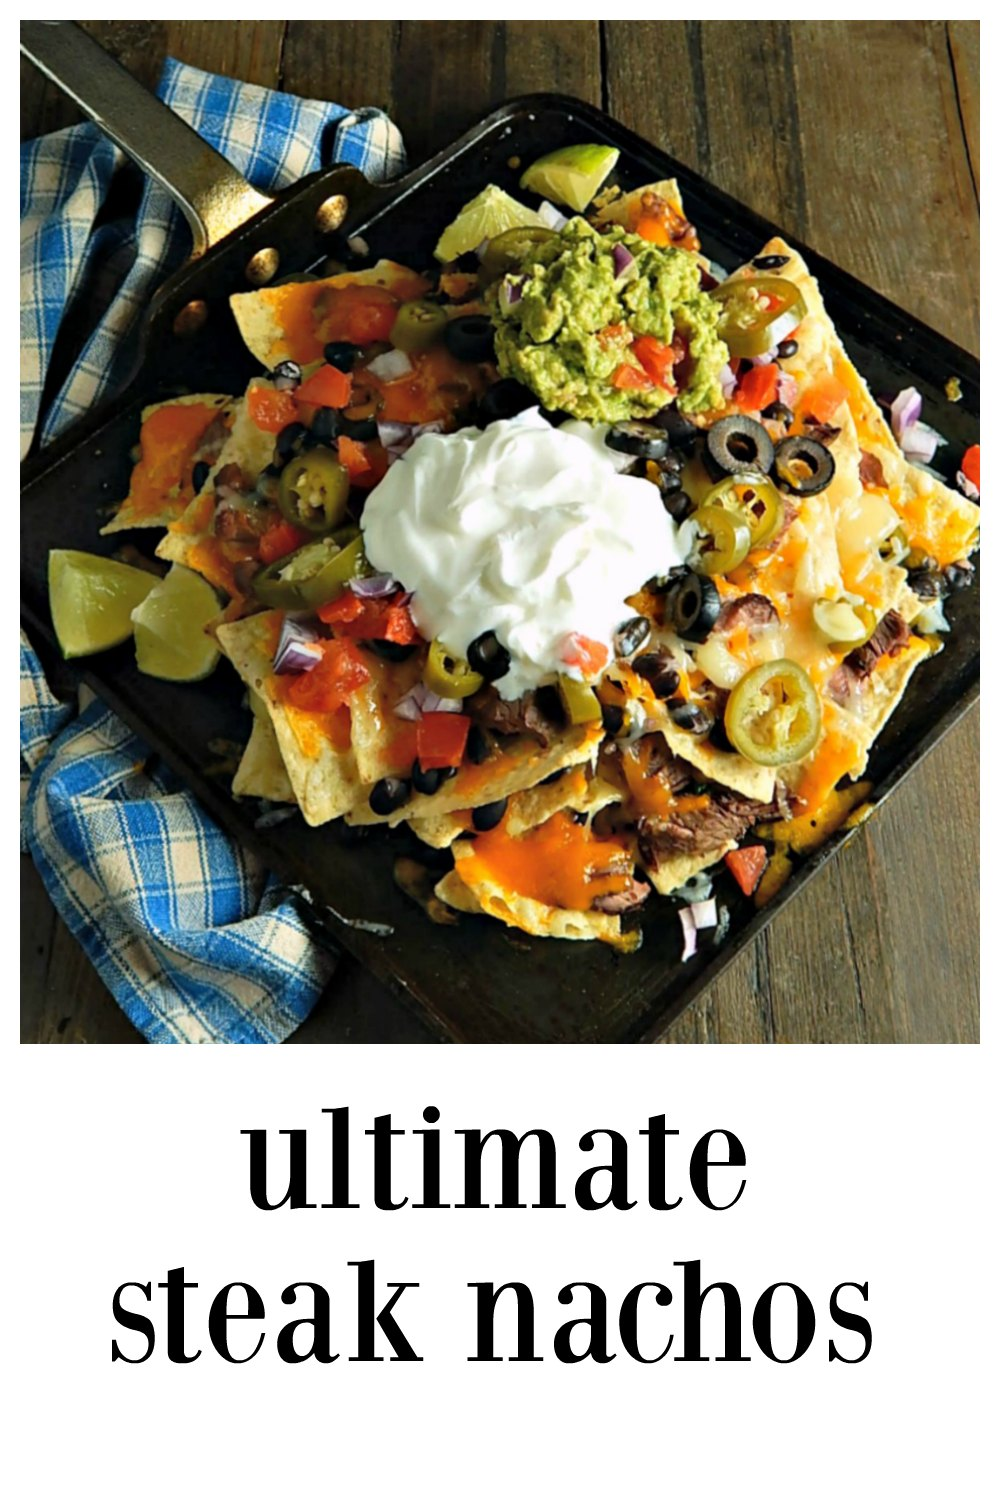 Ultimate Steak Nachos - You'll WANT to be home for these! Everything you could ever want in a Nacho straight from your oven! Heaven! #UltilmateNachos #SteakNachos #UltimateSteakNachos #LeftoverSteak #CincoDeMayo #BarFood